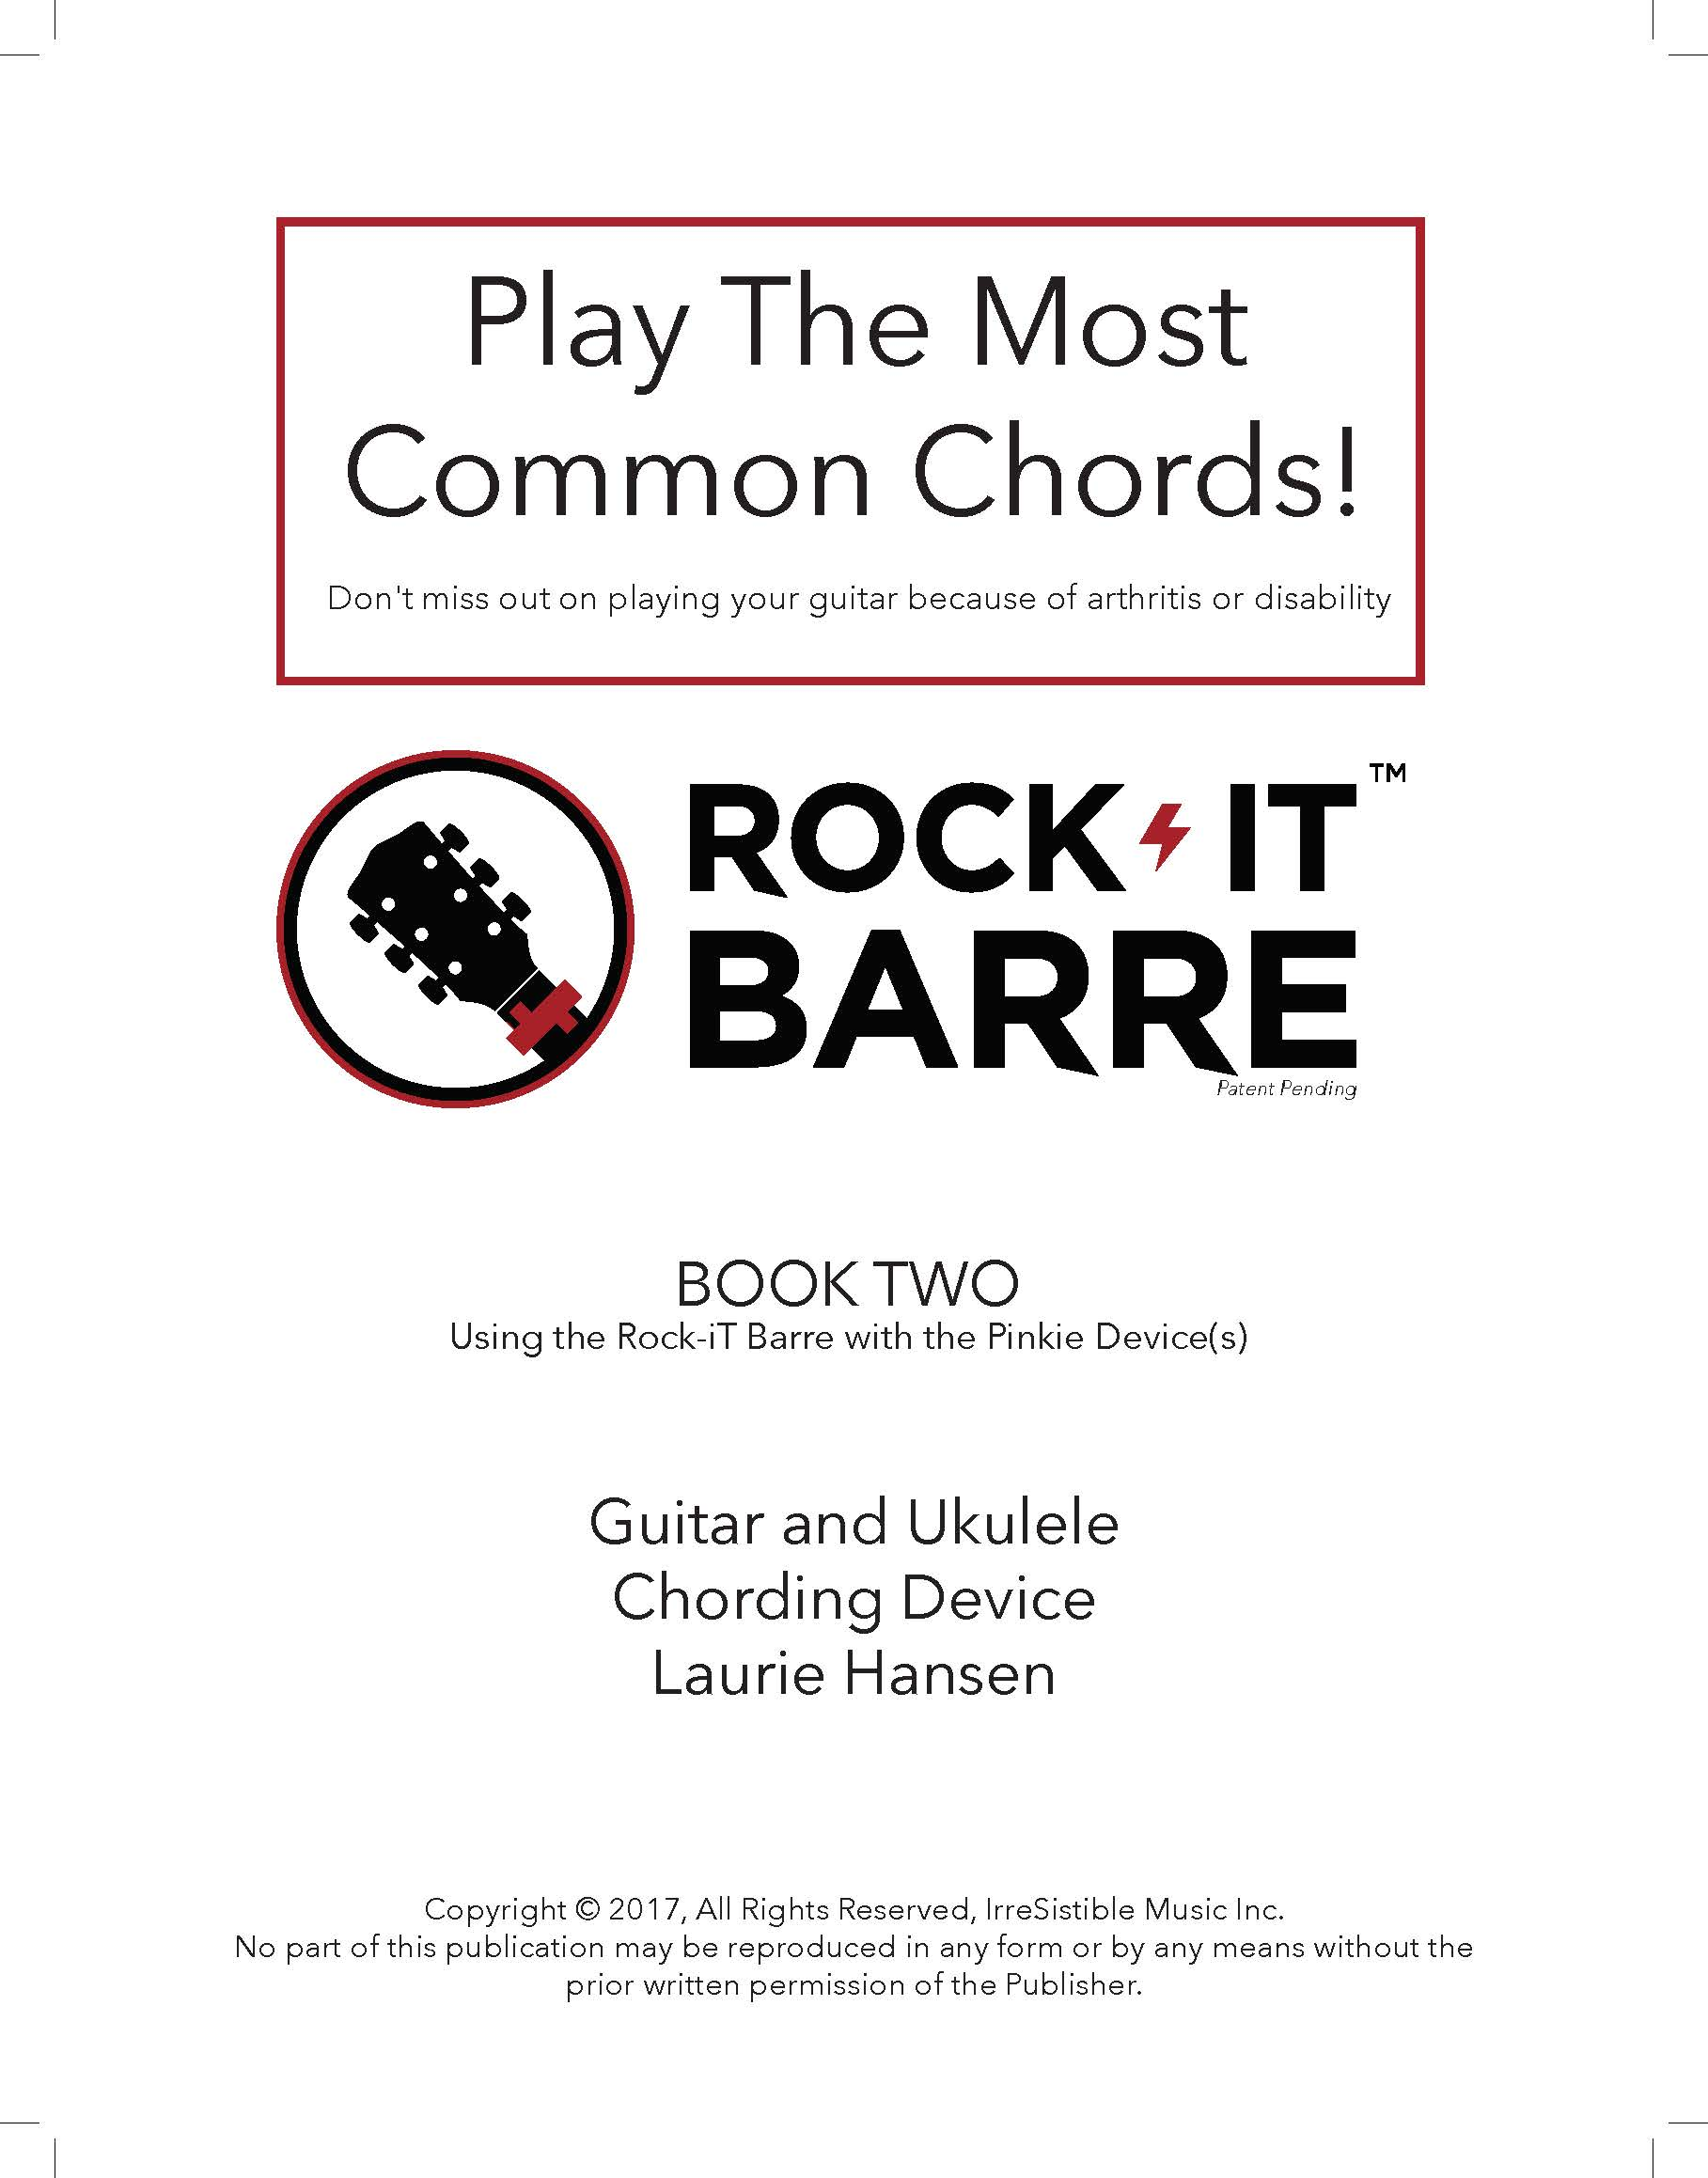 Advanced Method Book Two For The Rock It Barre Guitar Chord Device